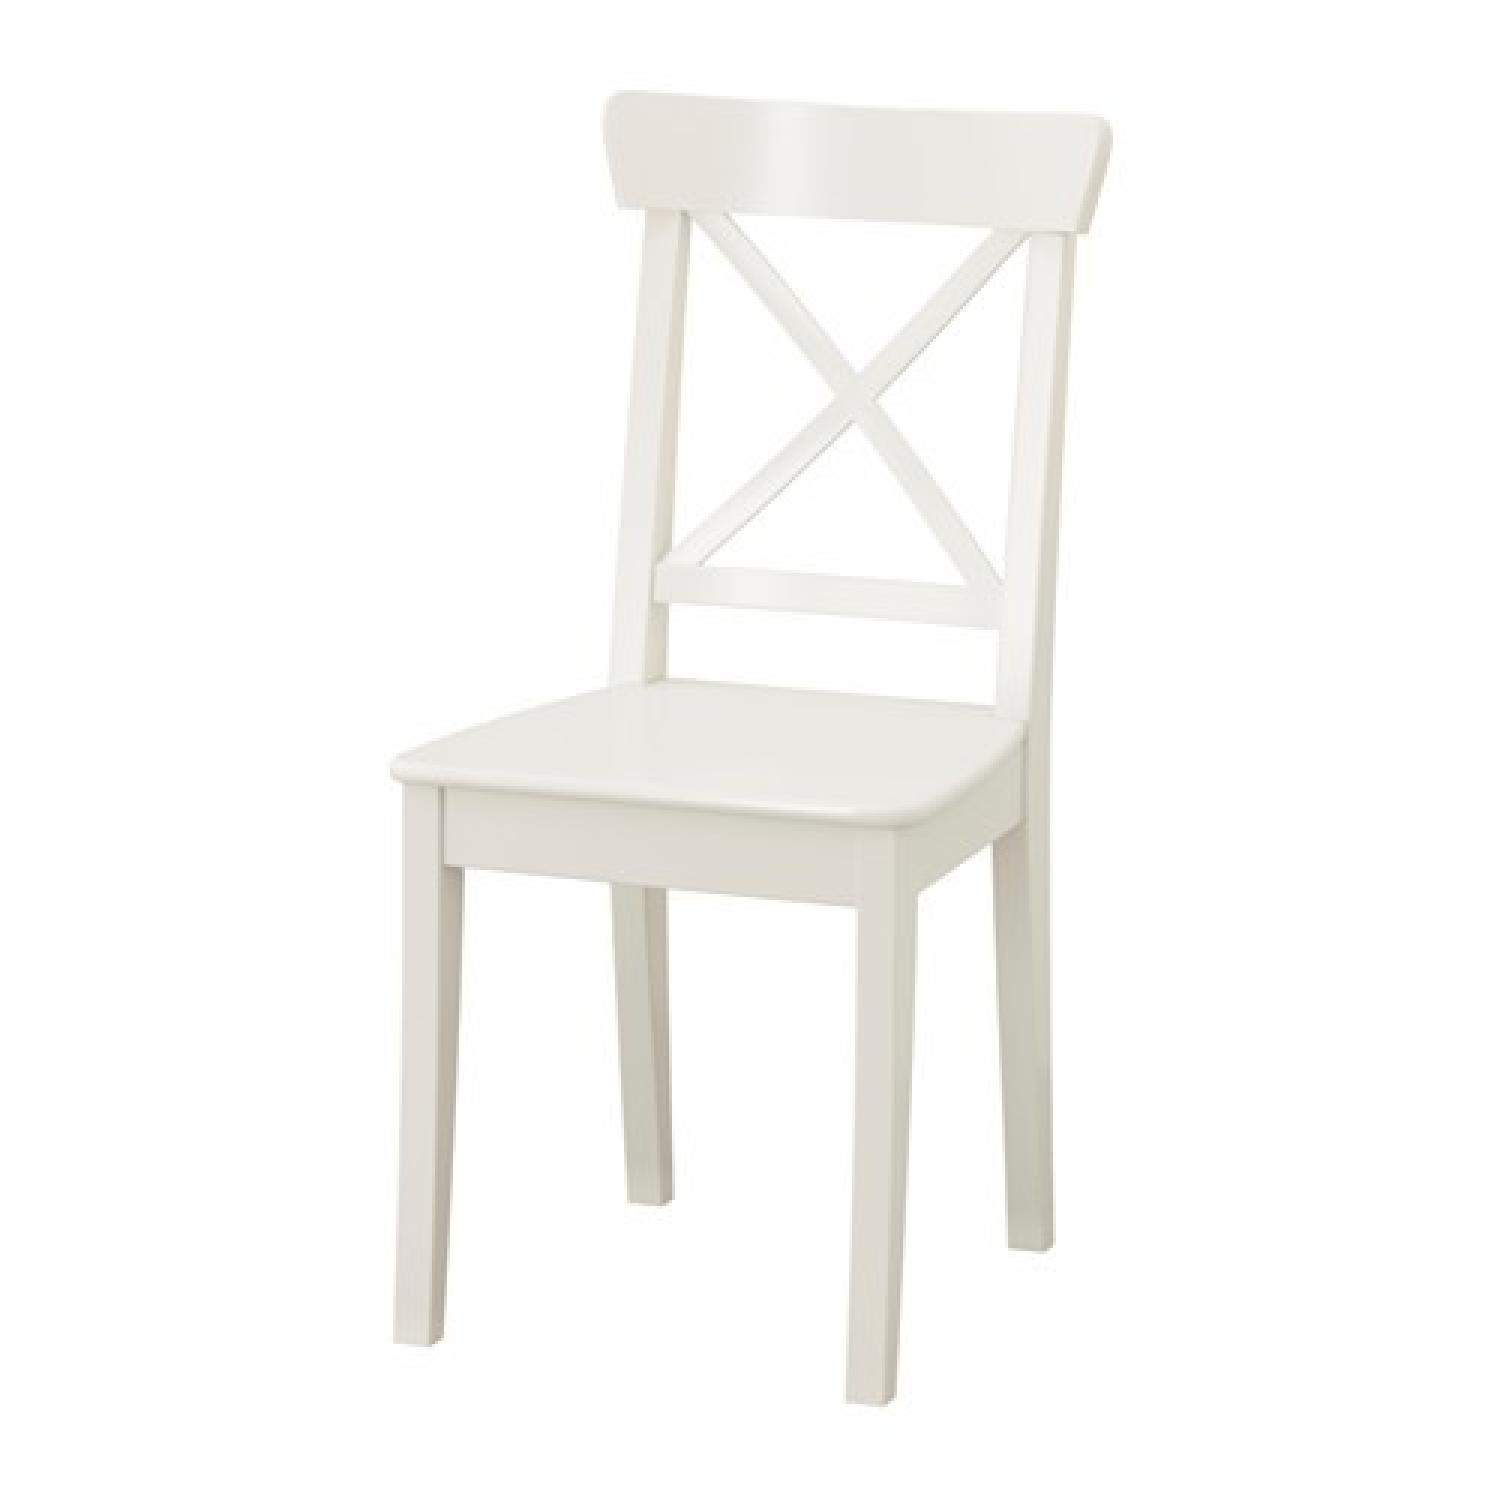 Ikea White Dining Chair - image-1